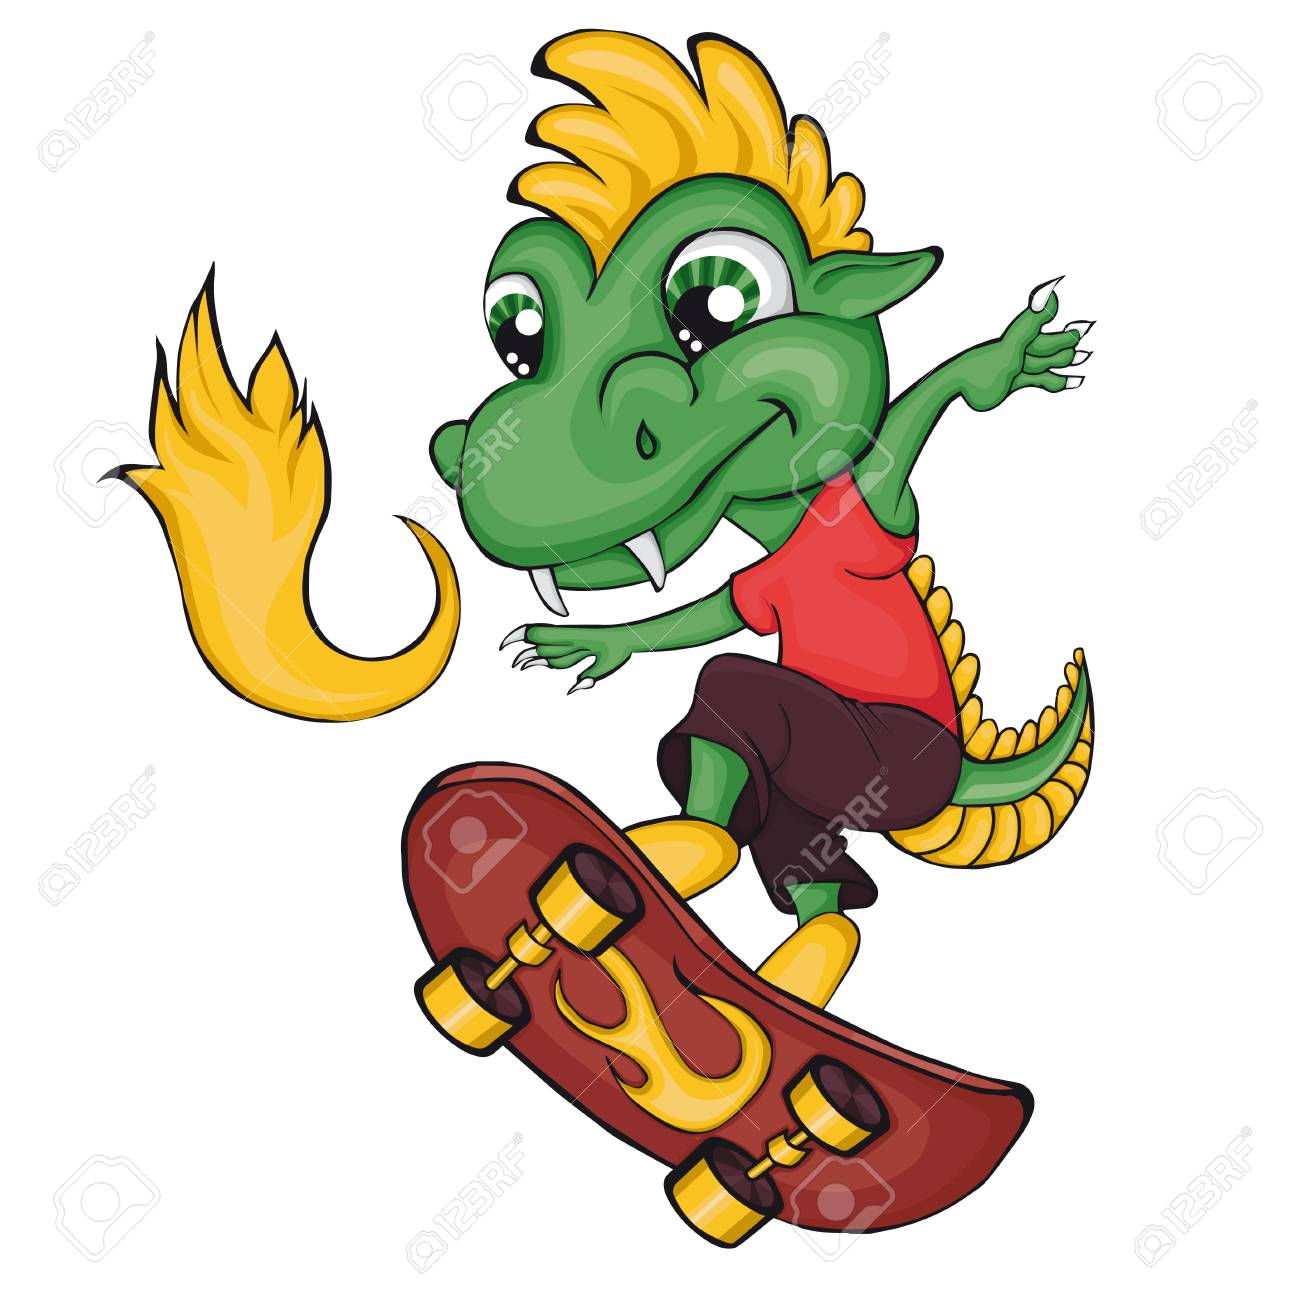 hight resolution of dragon skater cartoon style clip art for children stock vector 80786424